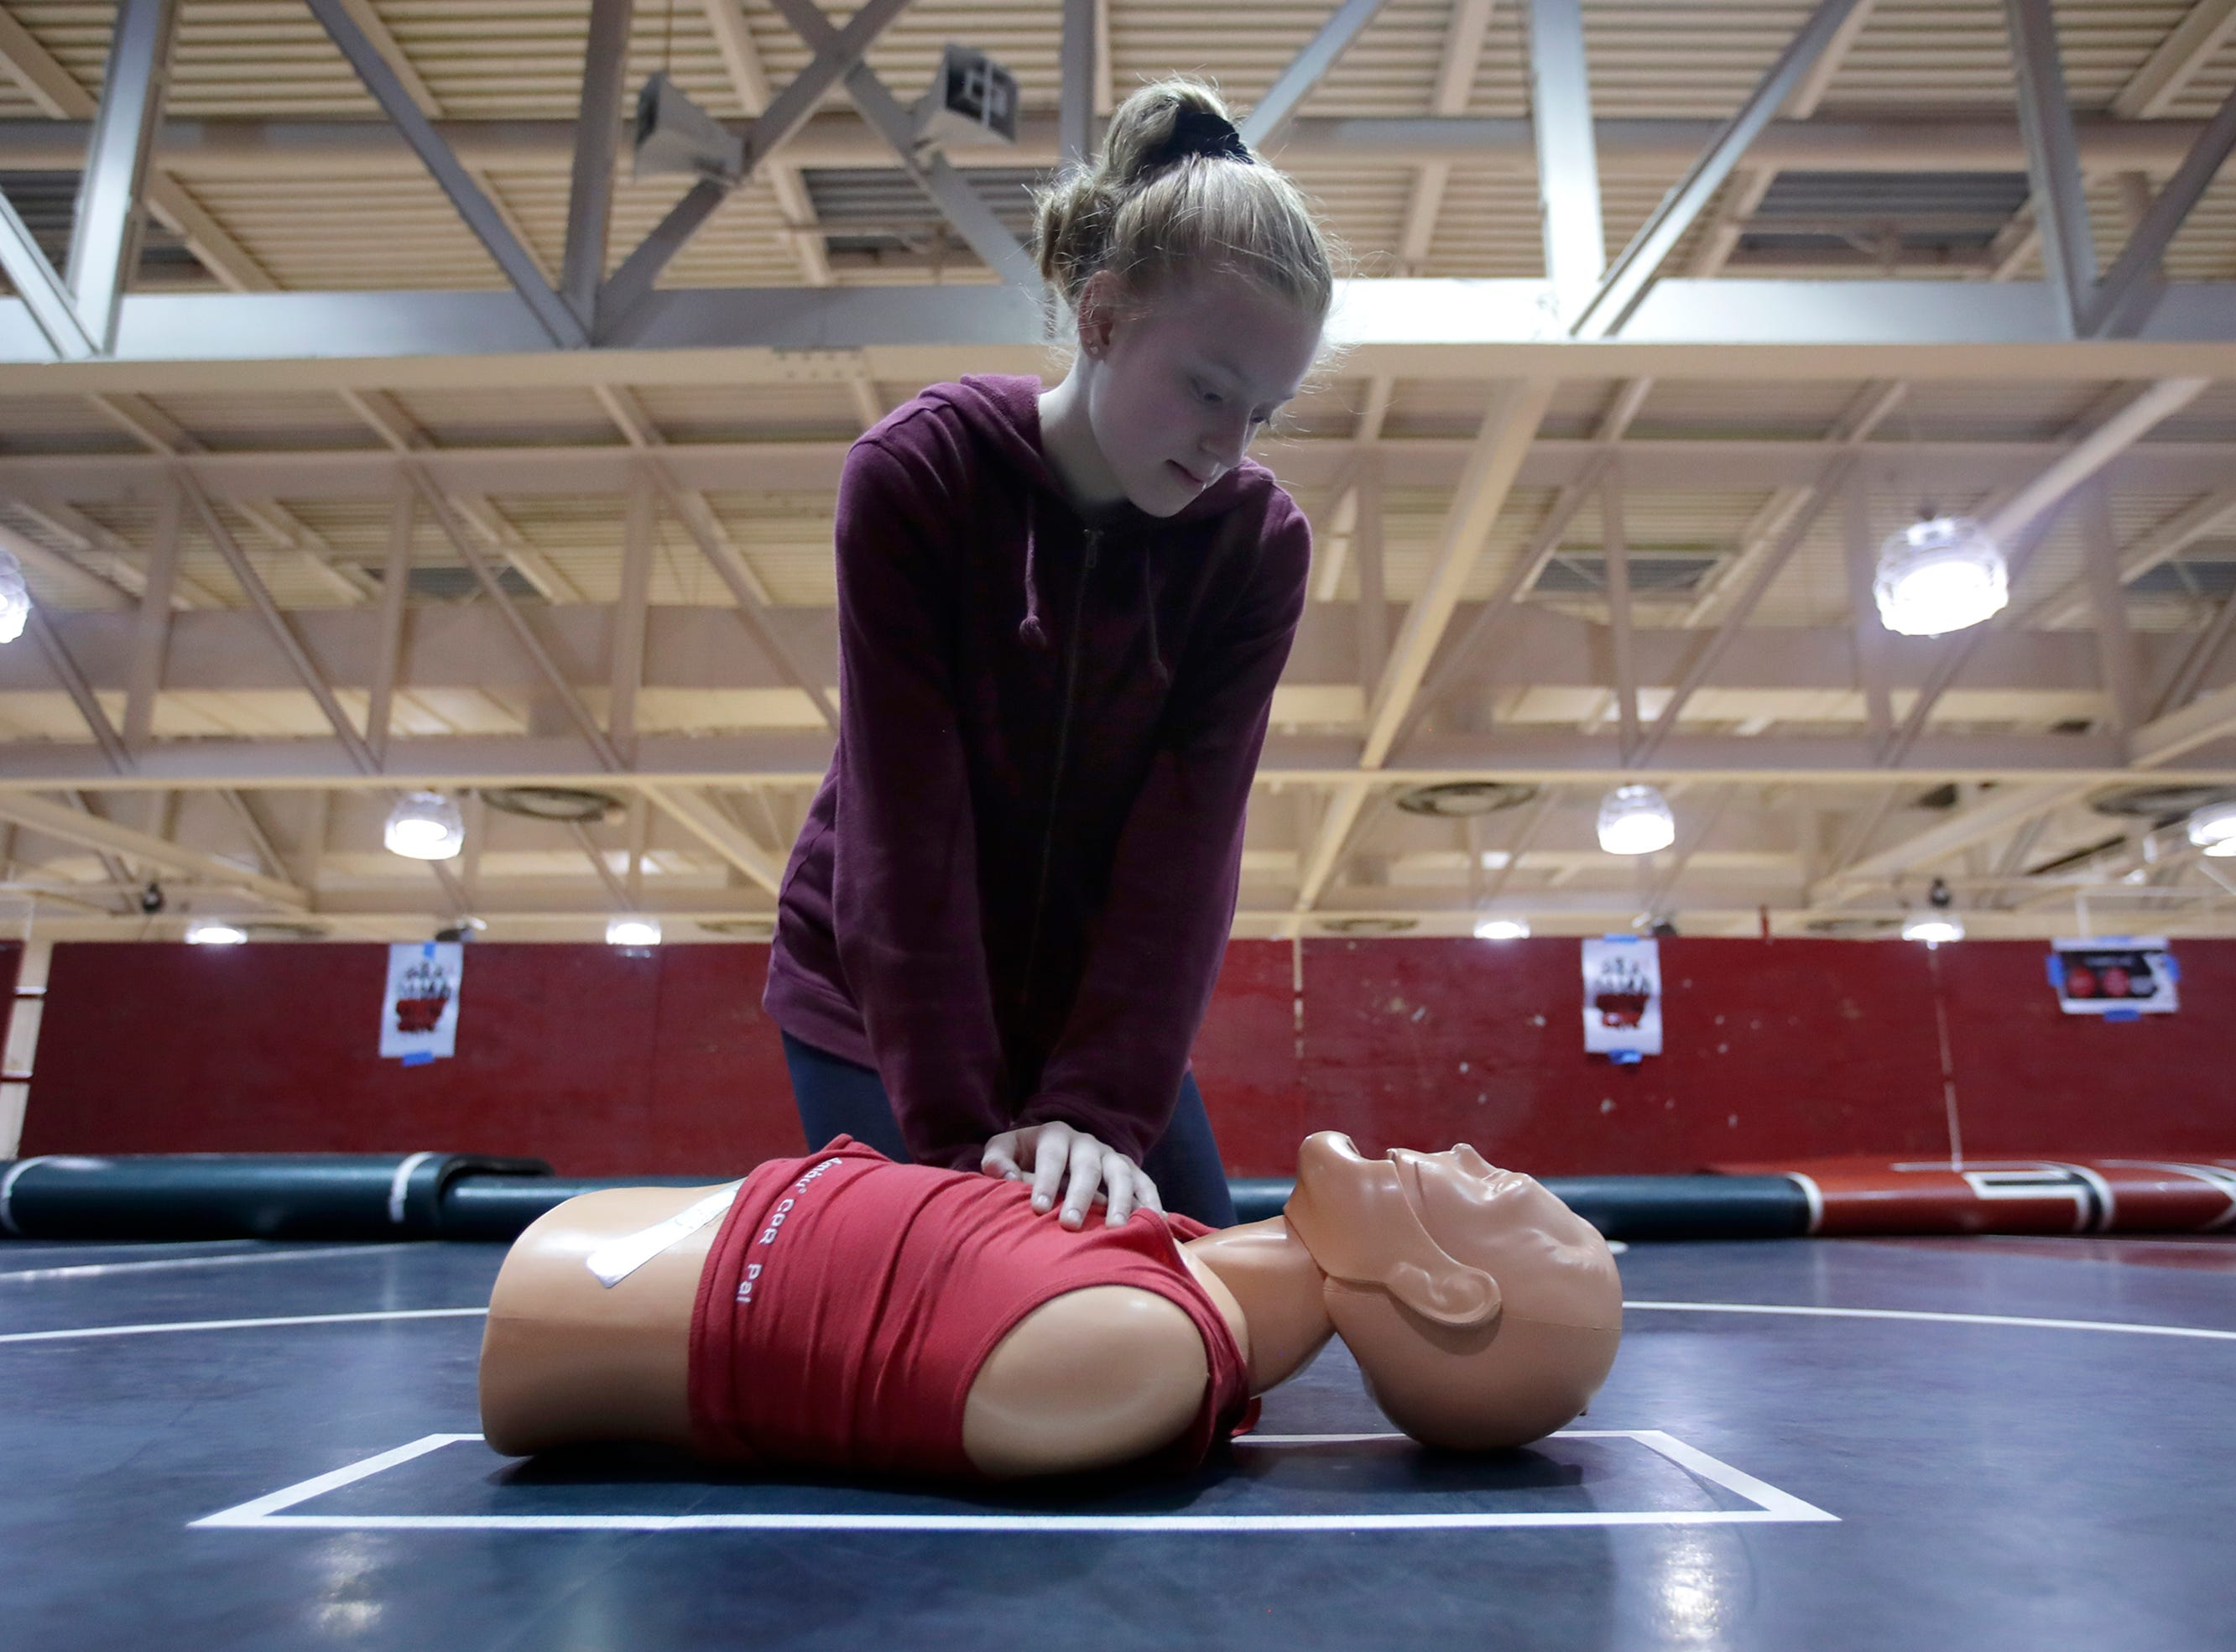 Mary Janssen, in 7th grade at Shattuck Middle School, performs chest compressions on a dummy Thursday, April 18, 2019, in Neenah, Wis. Neenah-Menasha Fire Rescue ran fitness activities to show students some of the physical demands of firefighting. Danny Damiani/USA TODAY NETWORK-Wisconsin